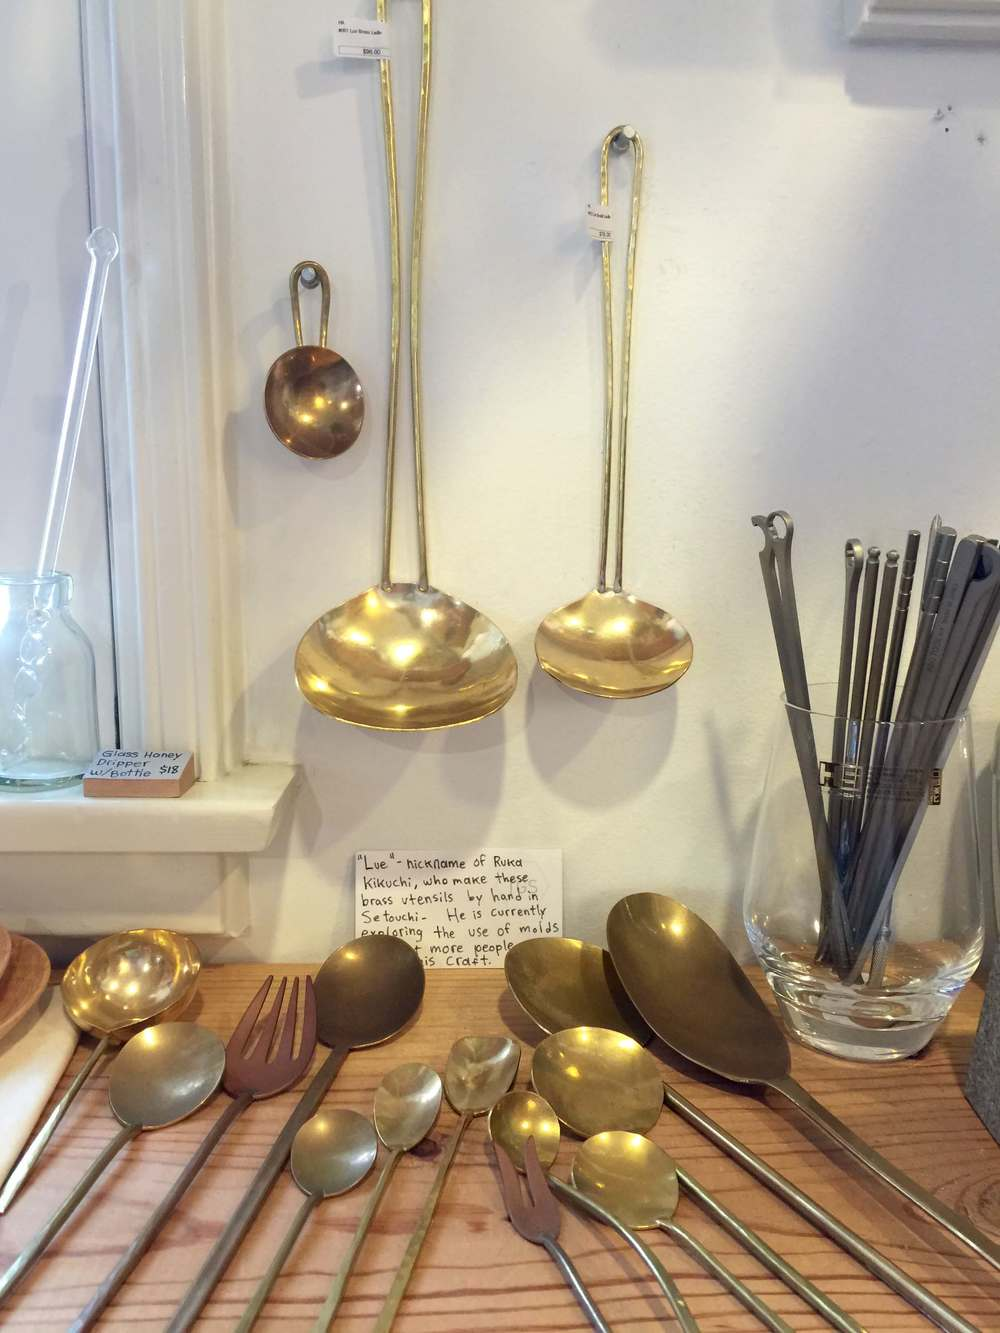 Handmade utensils from Tortoise General Store